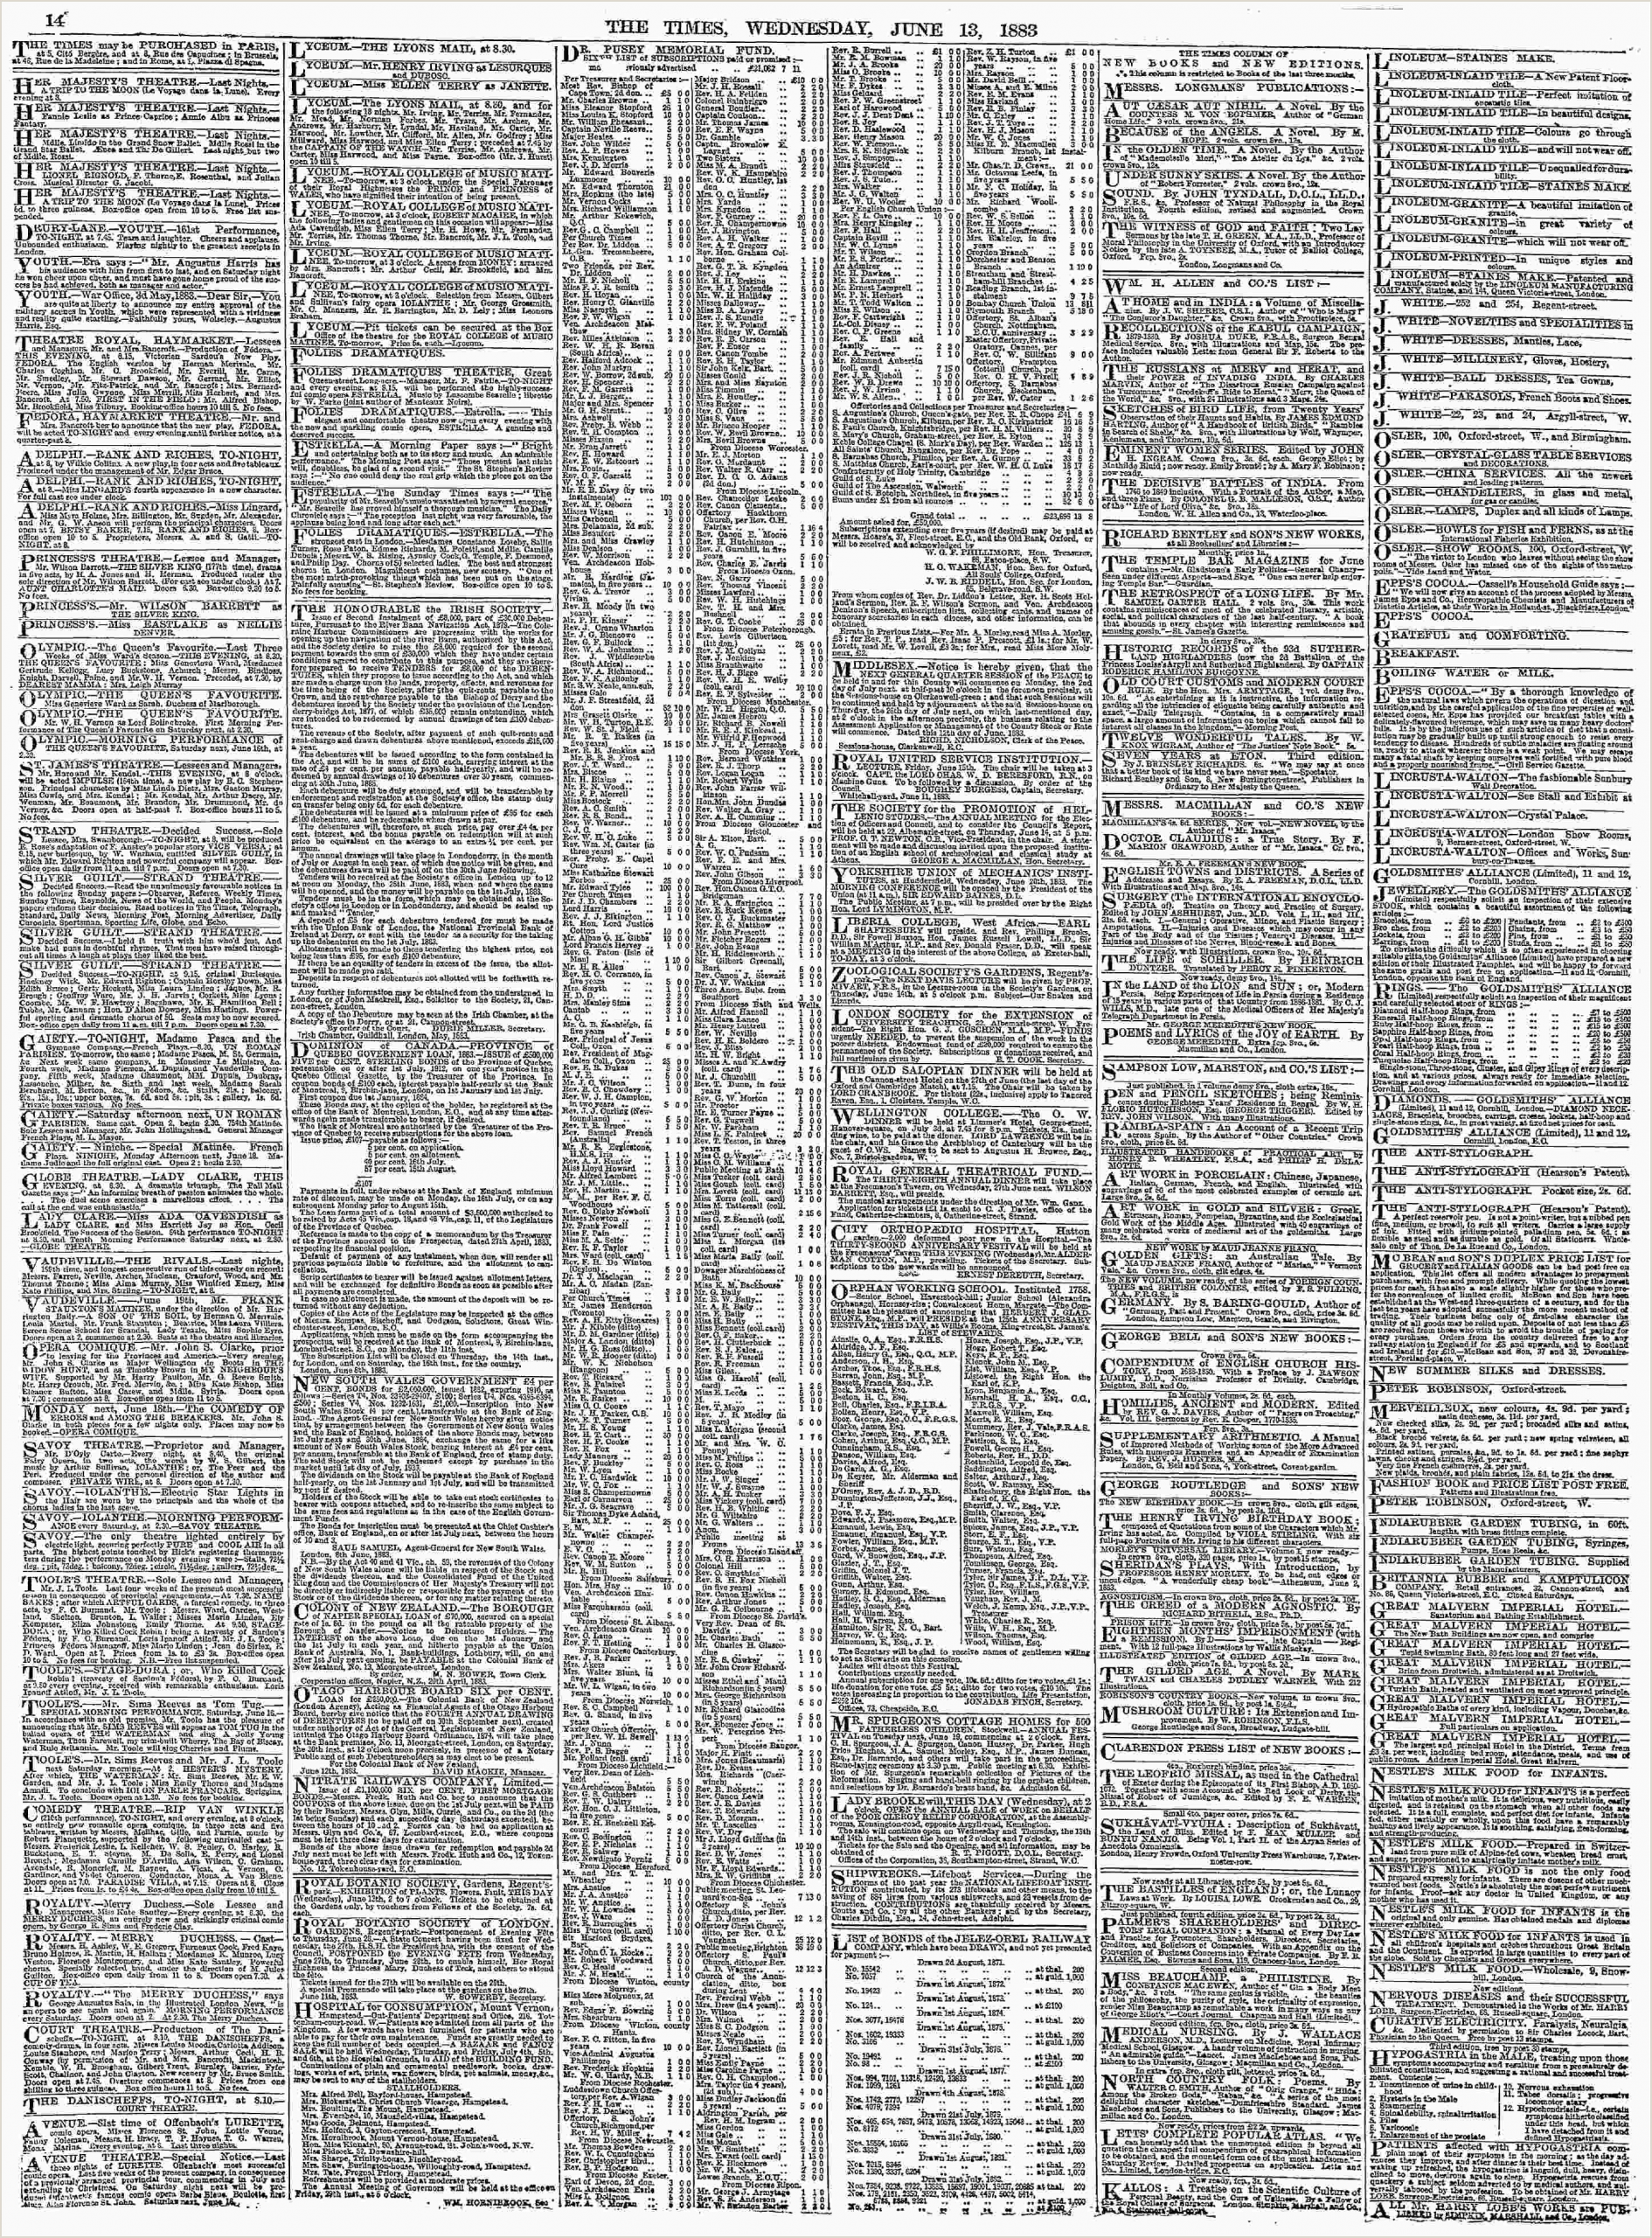 Bthe Best Business Cards Archive Page Viewer June 13 1883